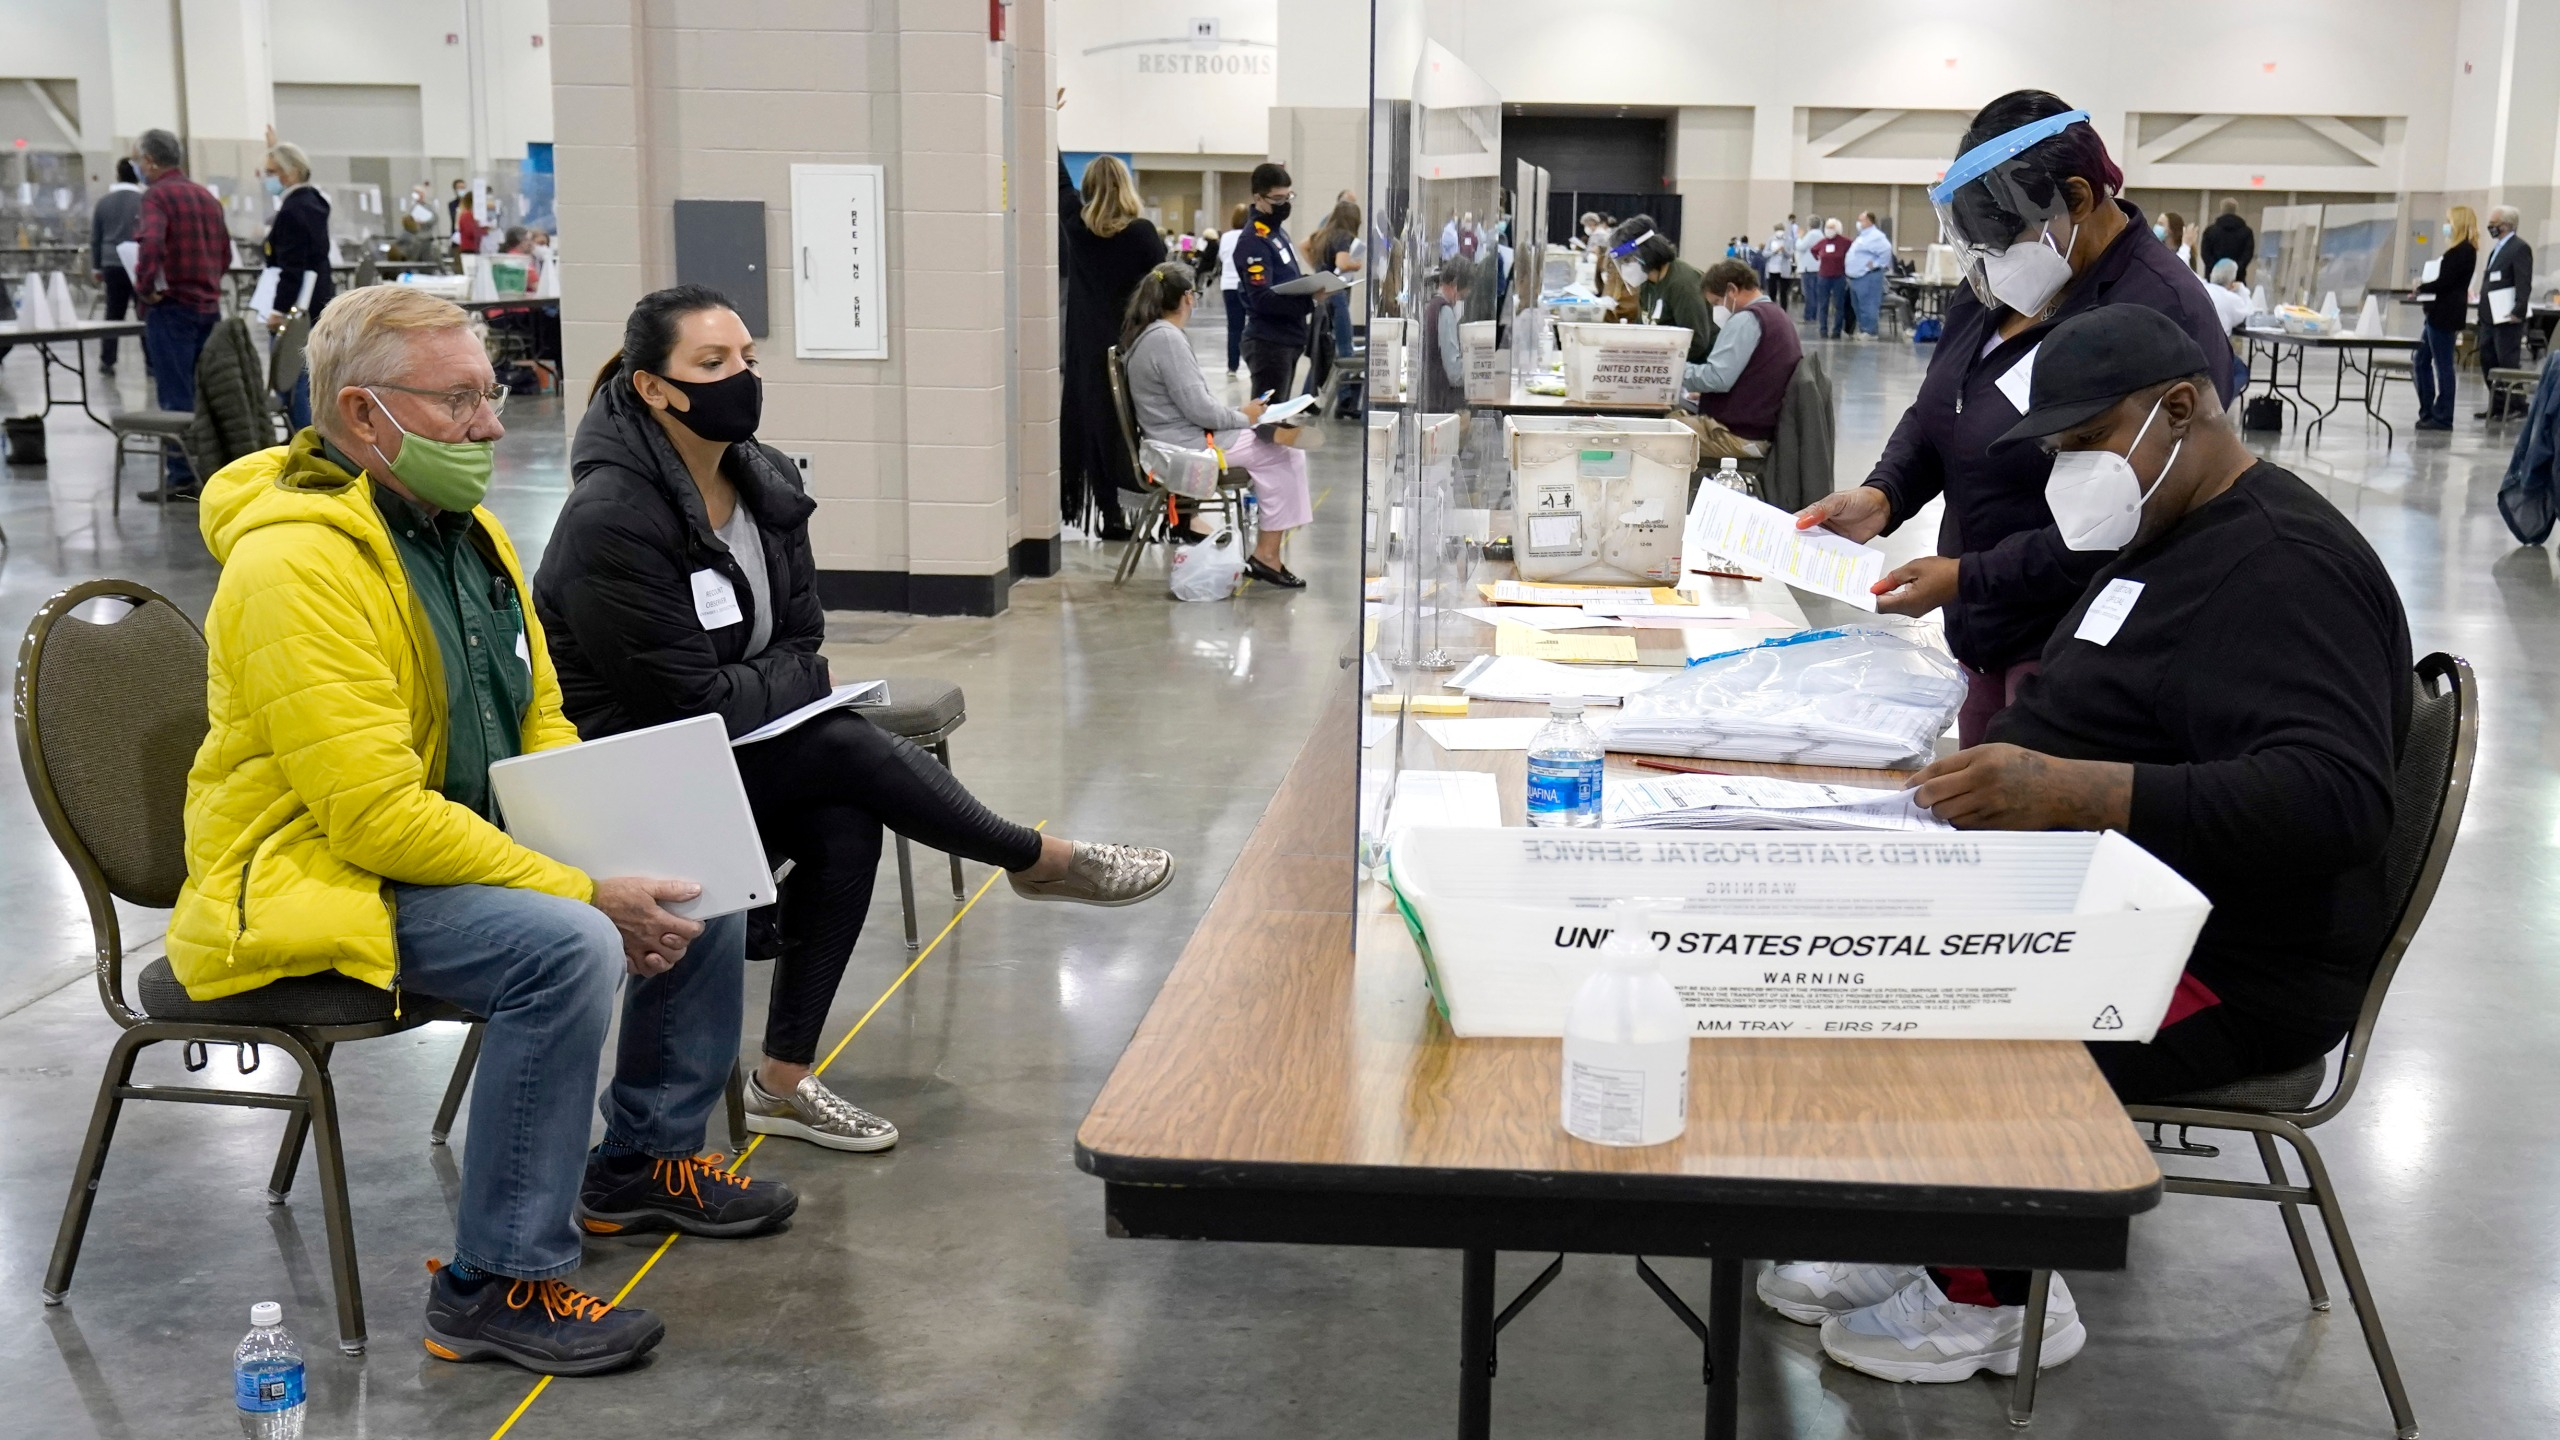 Election workers, right, verify ballots as recount observers, left, watch during a Milwaukee hand recount of presidential votes at the Wisconsin Center, Friday, Nov. 20, 2020, in Milwaukee. (AP Photo/Nam Y. Huh)